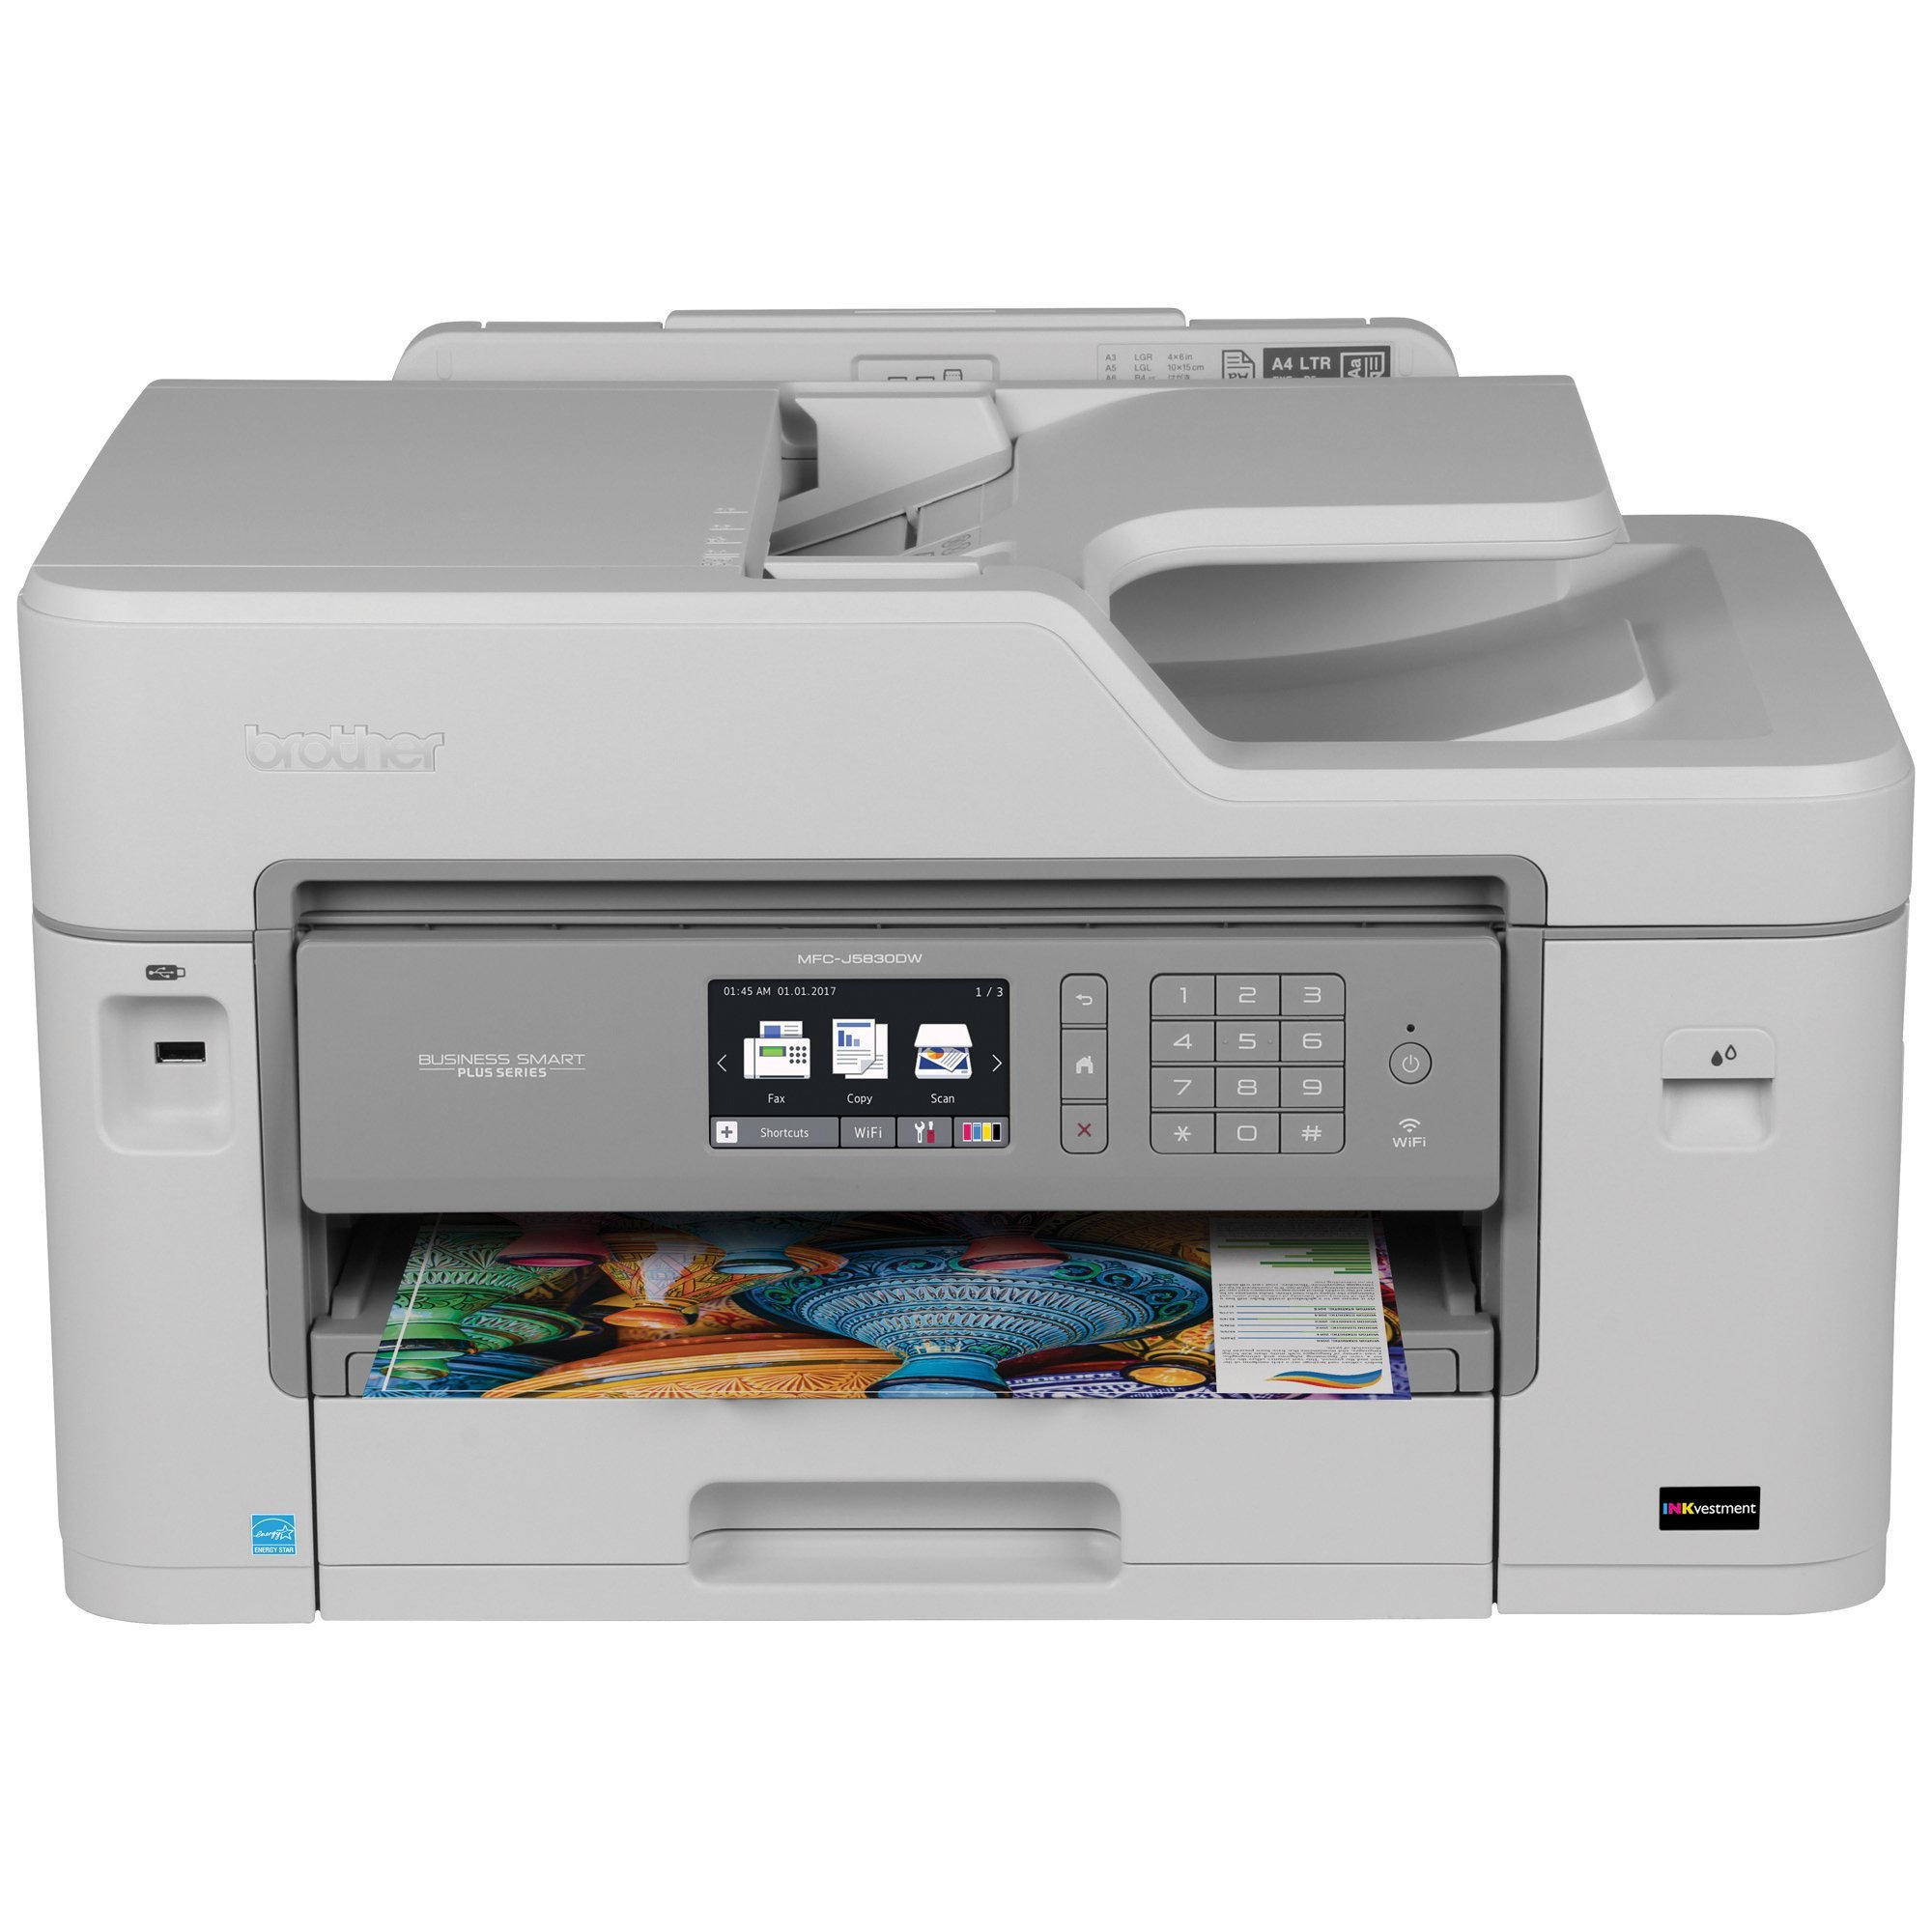 Brother Printer RMFCJ5830DW Refurbished Business Smart Plus with INKvestment Cartridges